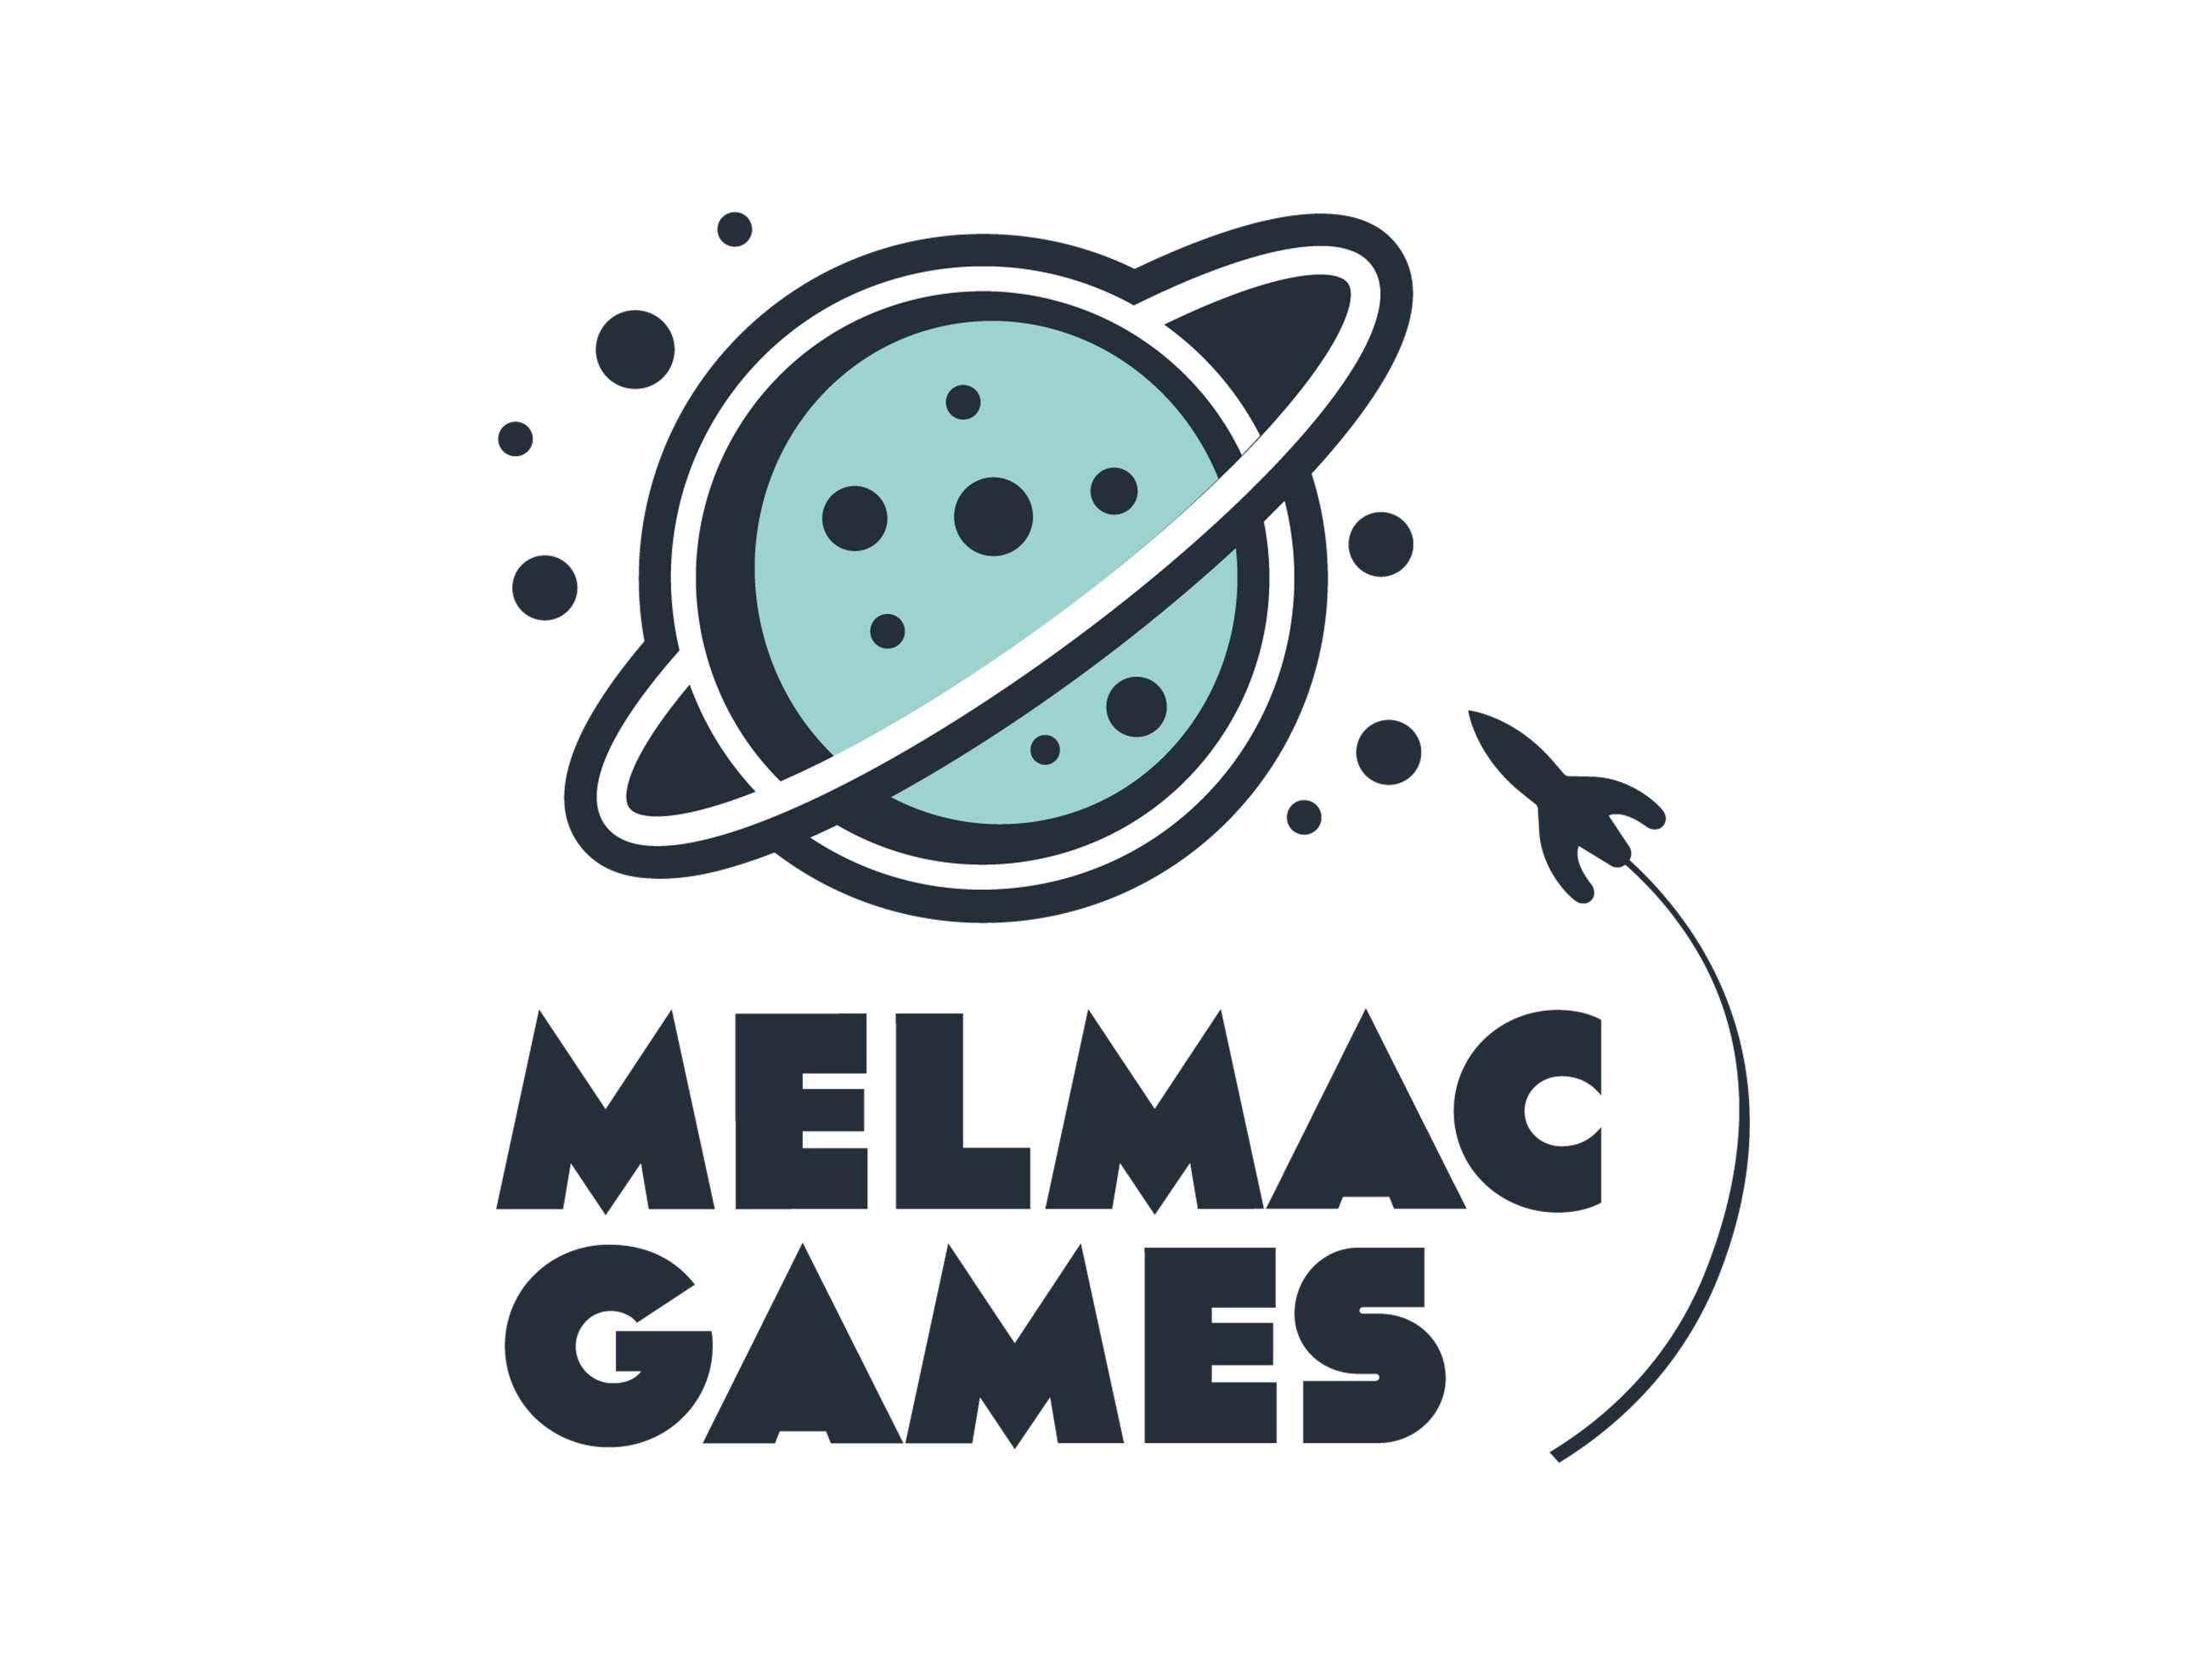 Melmac Games Meeple Foundry